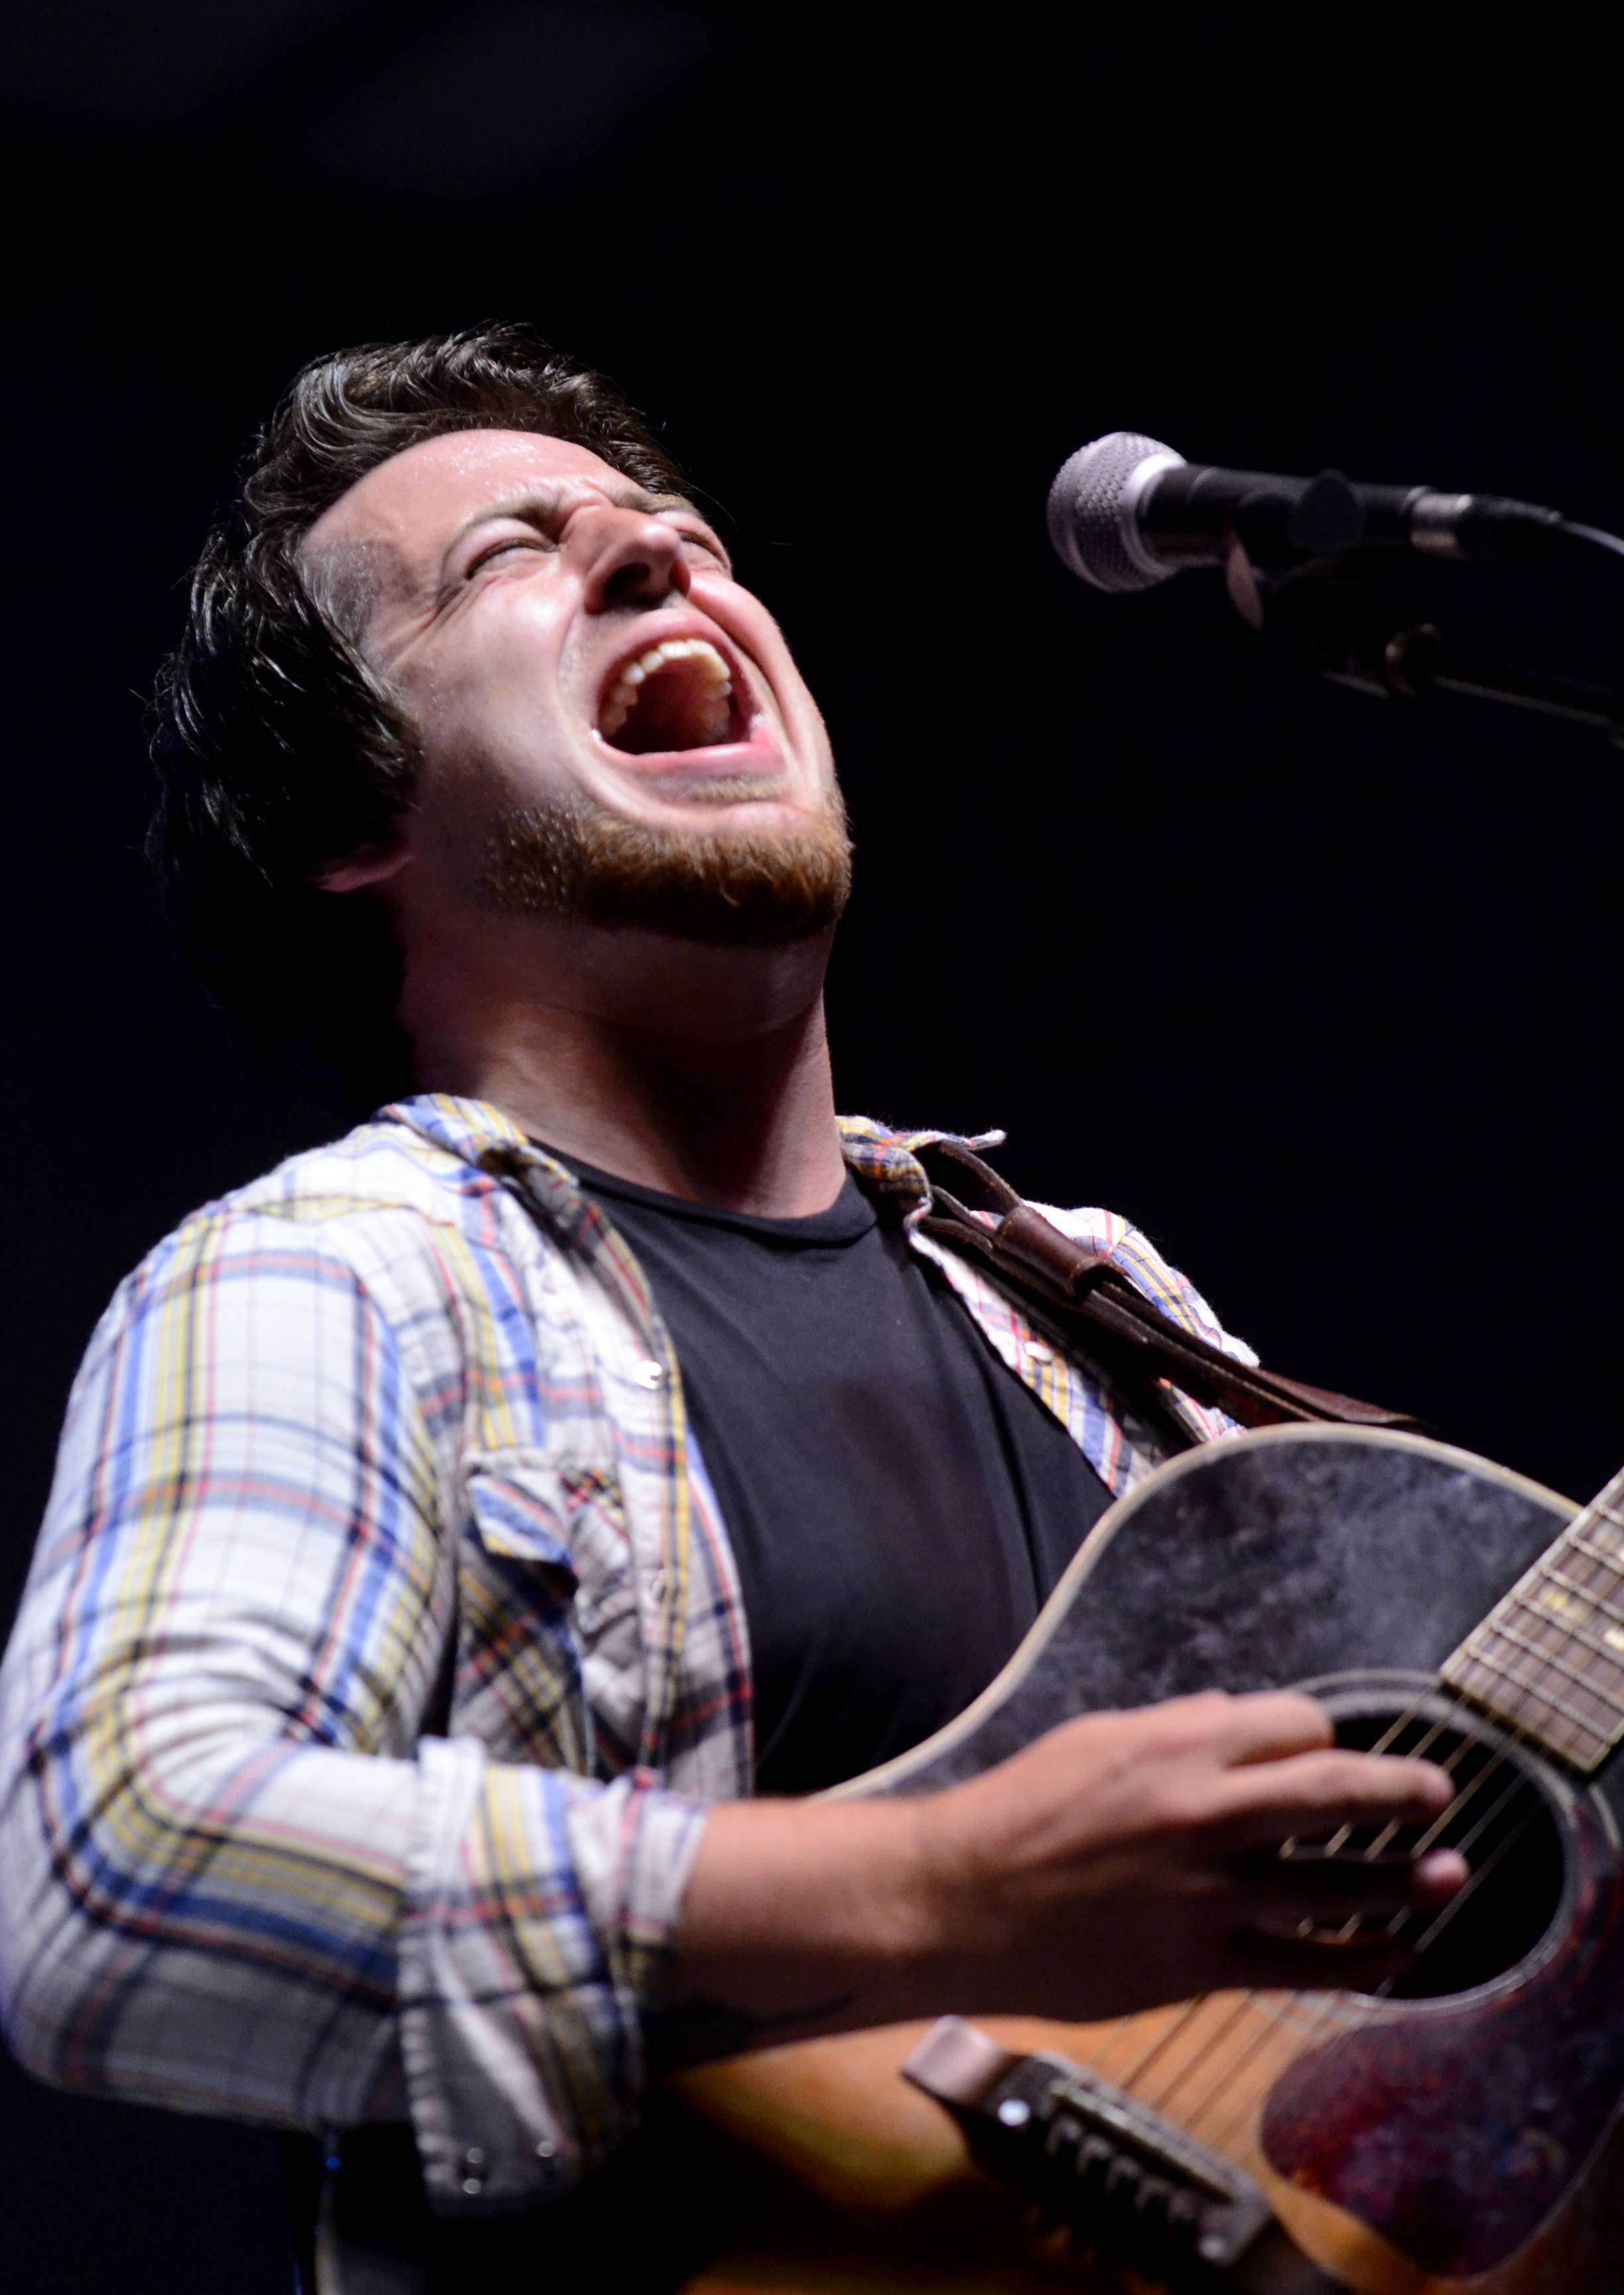 American Idol winner and Mount Prospect native Lee DeWyze performs at the Rockin' Ribfest in Lake in the Hills on Friday.